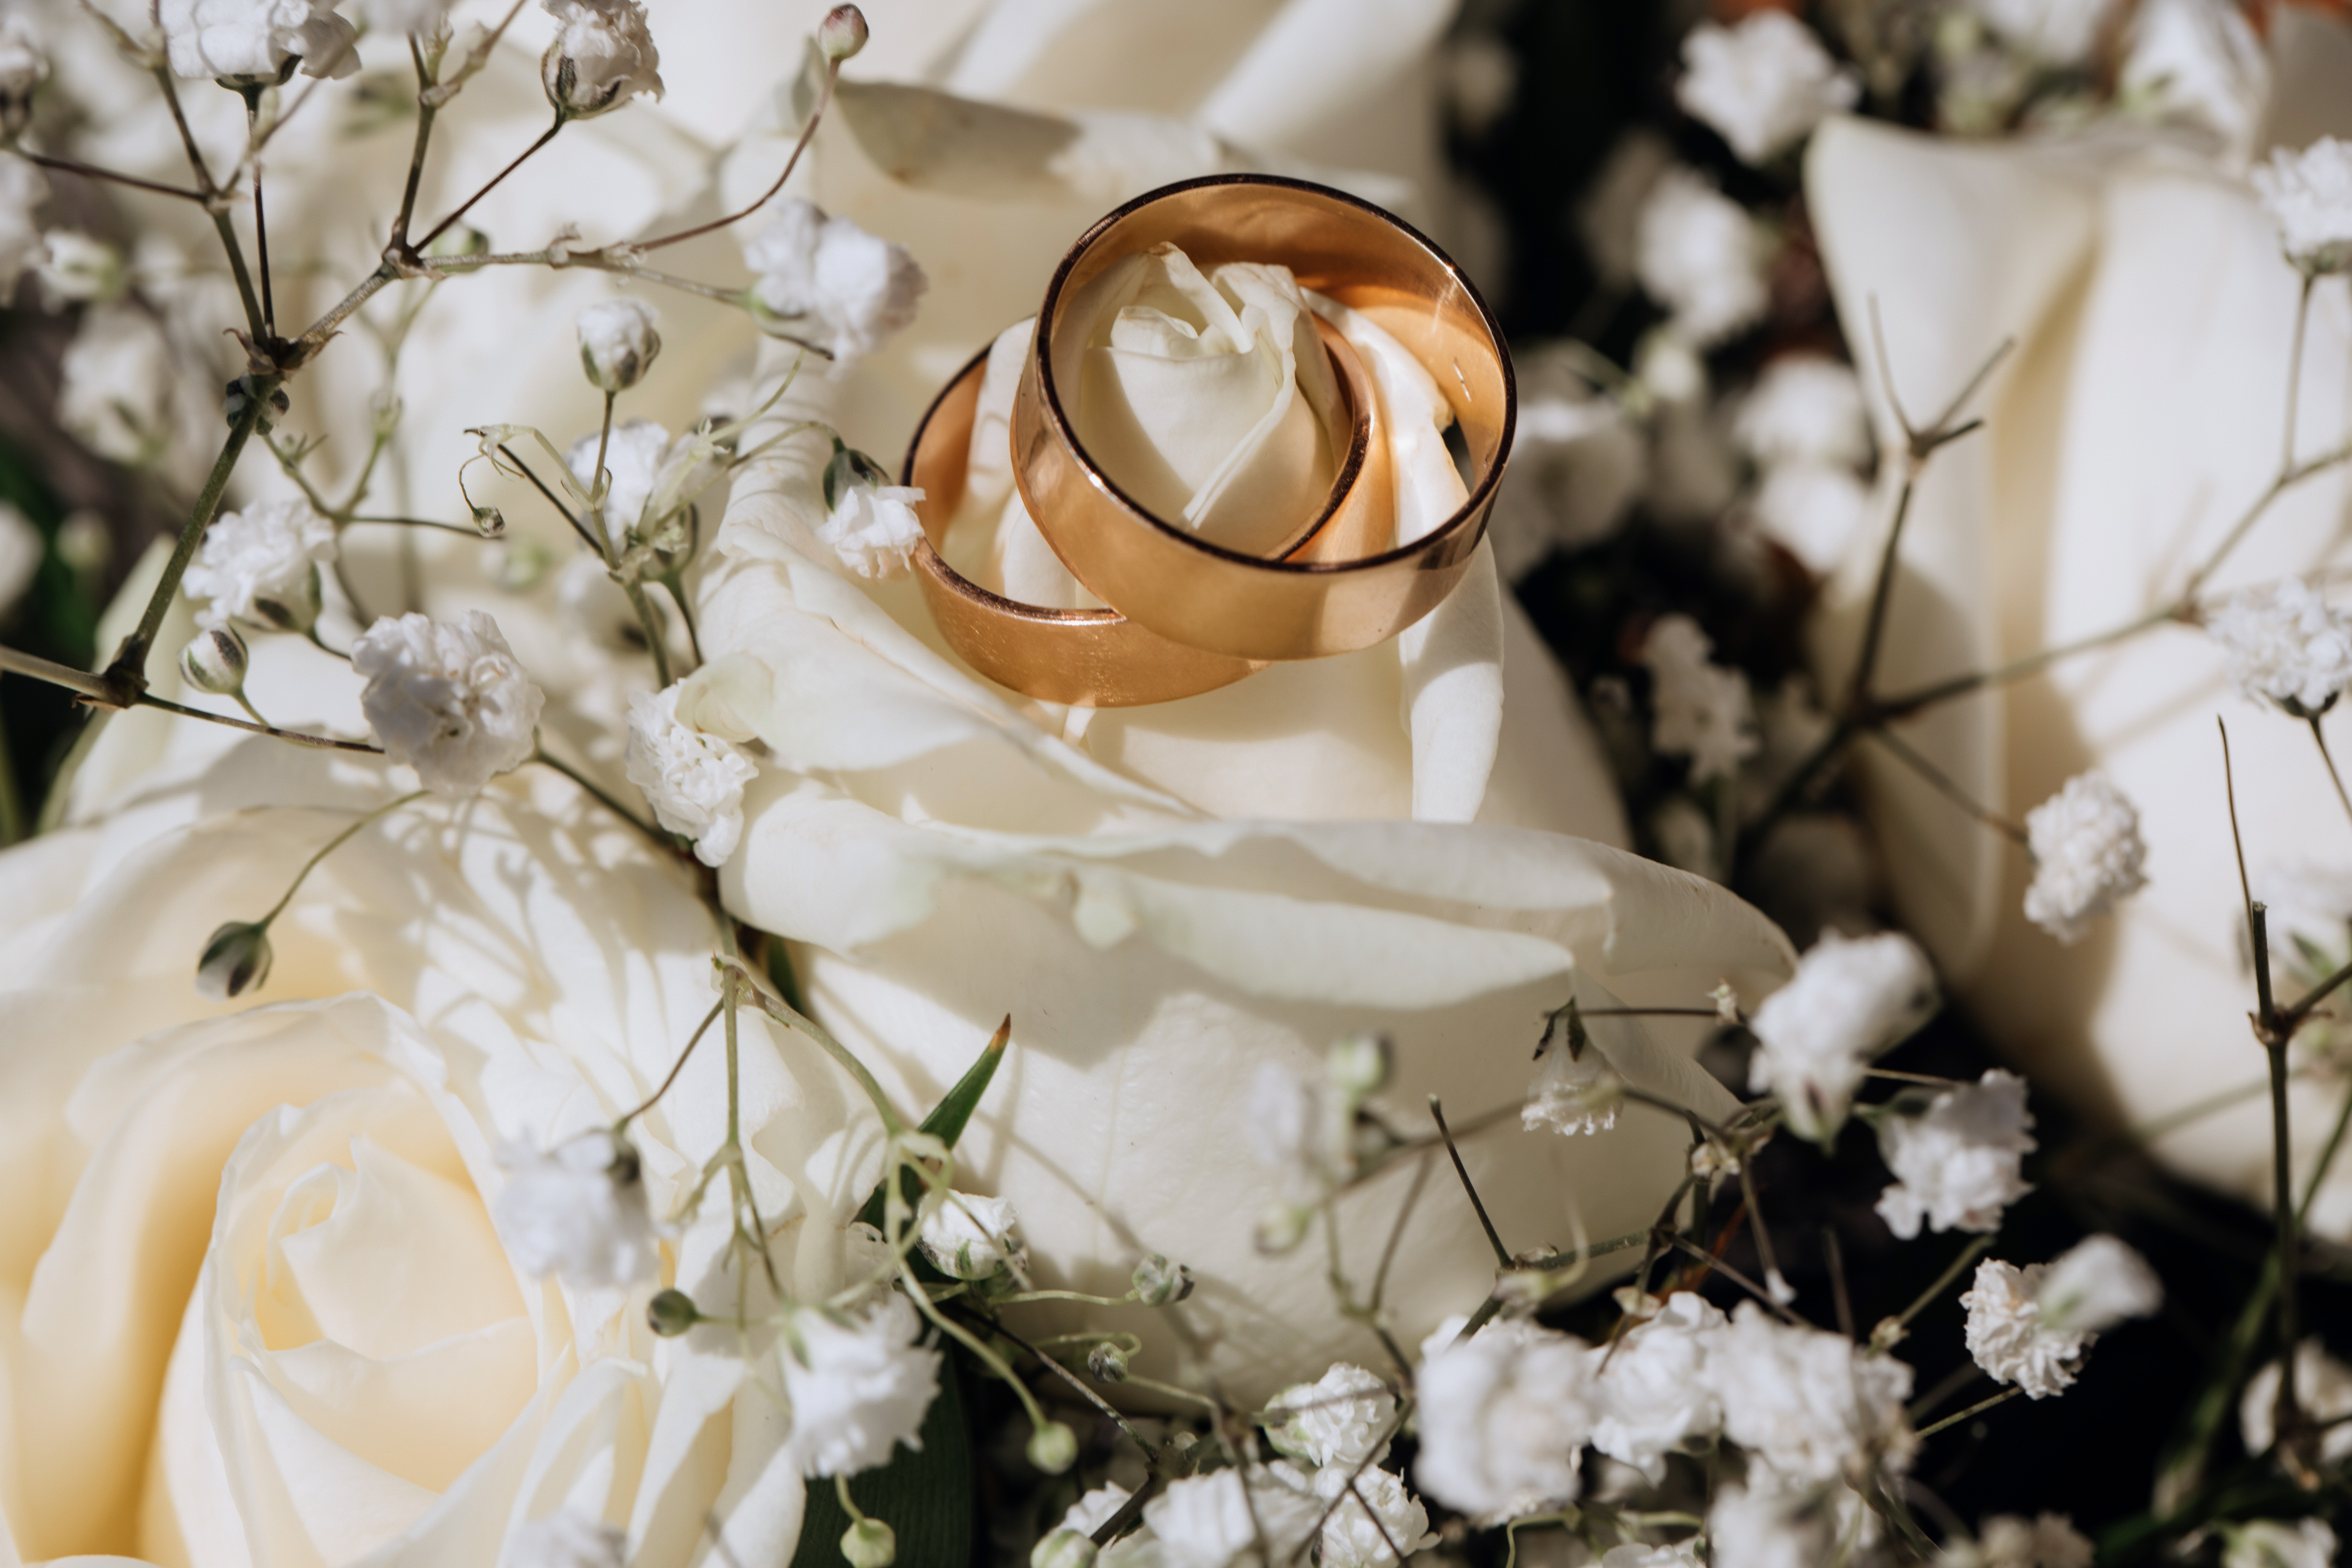 golden-wedding-rings-white-rose-from-wedding-bouquet